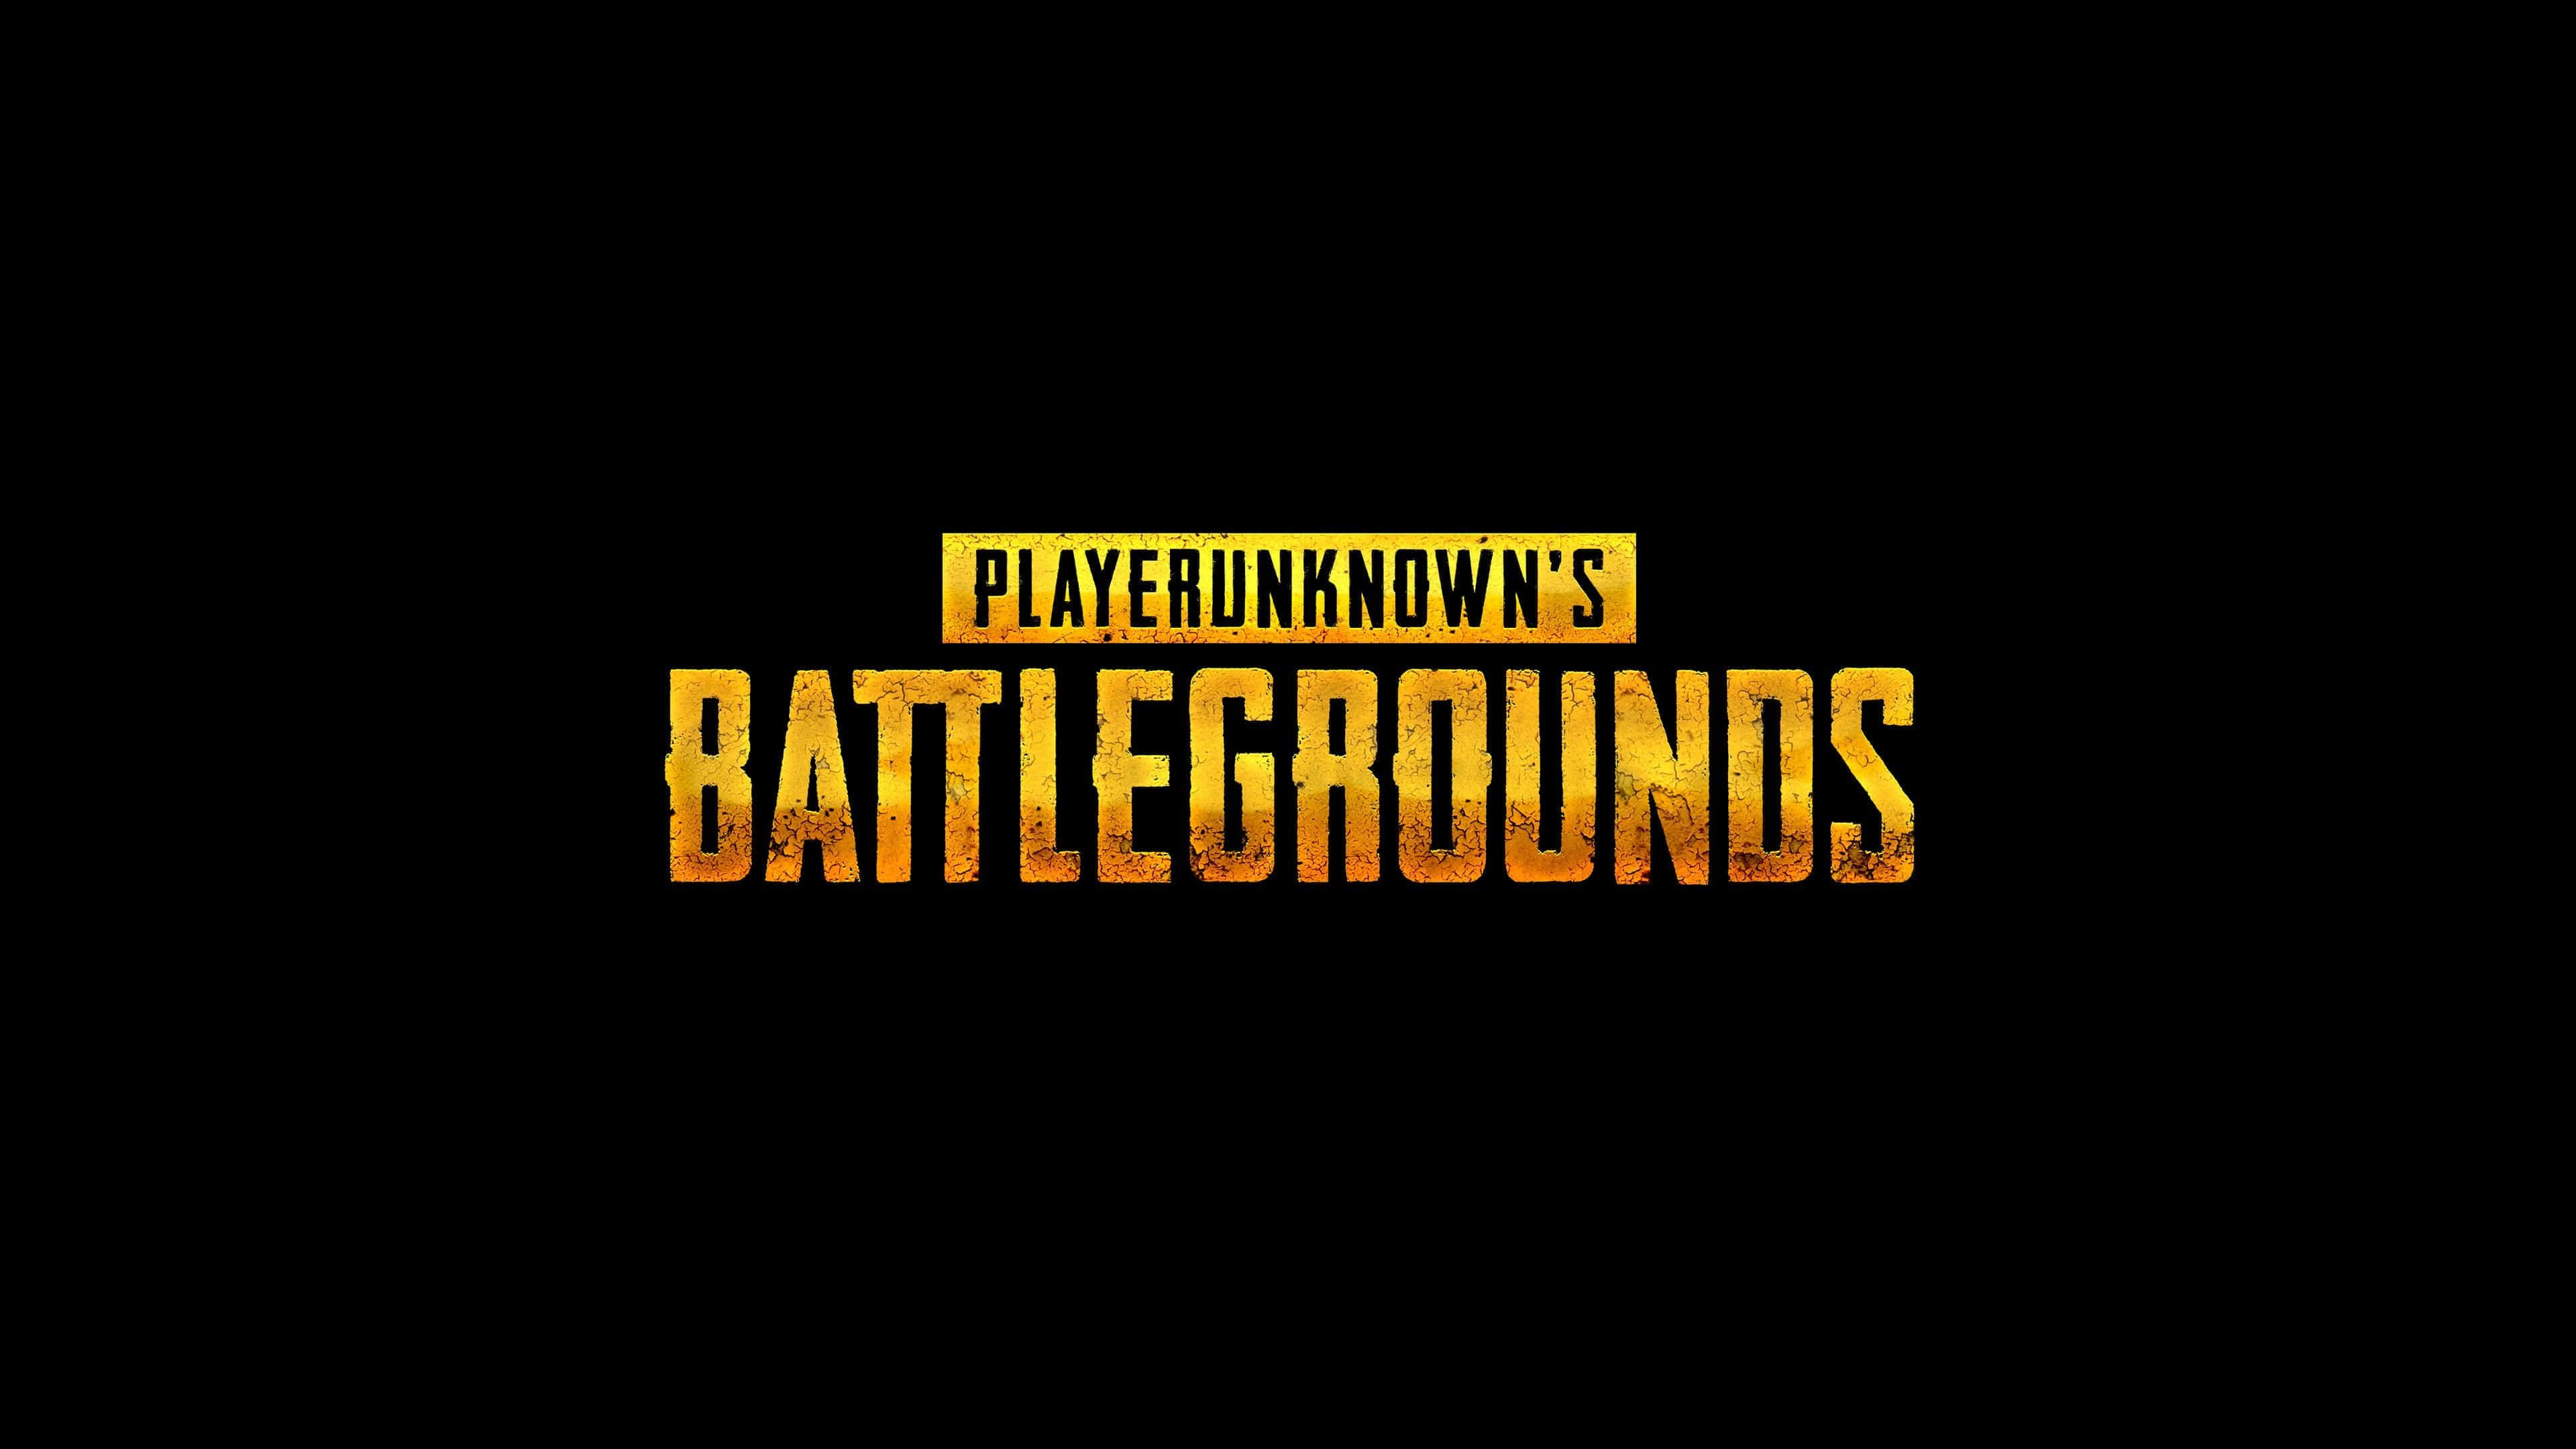 hd png playerunknowns battlegrounds logo